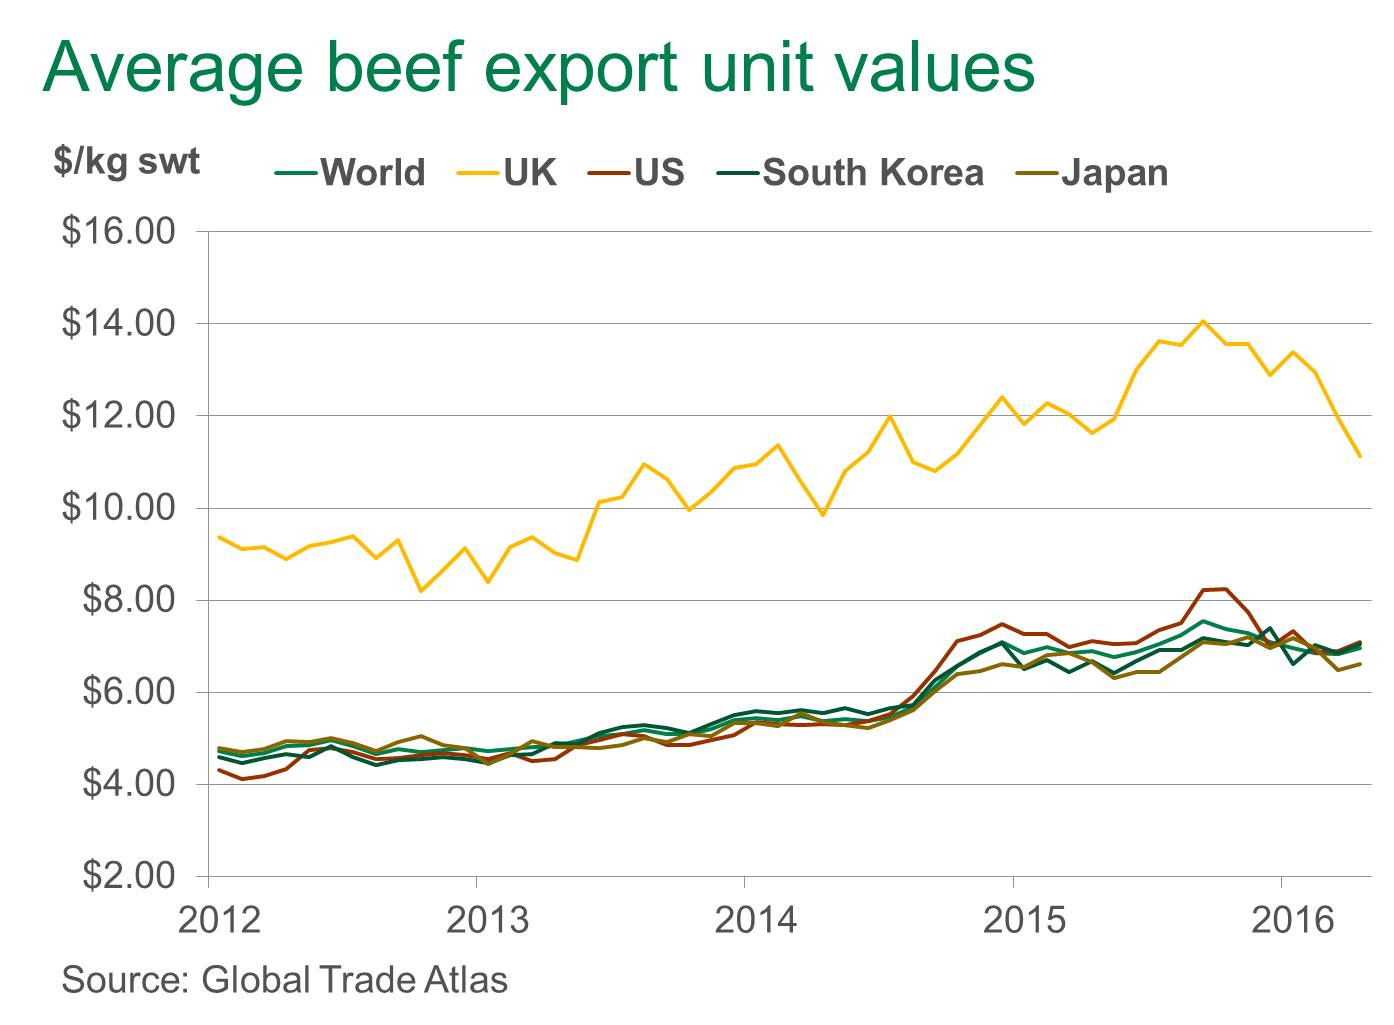 Beef-export-unit-values-UK.jpg